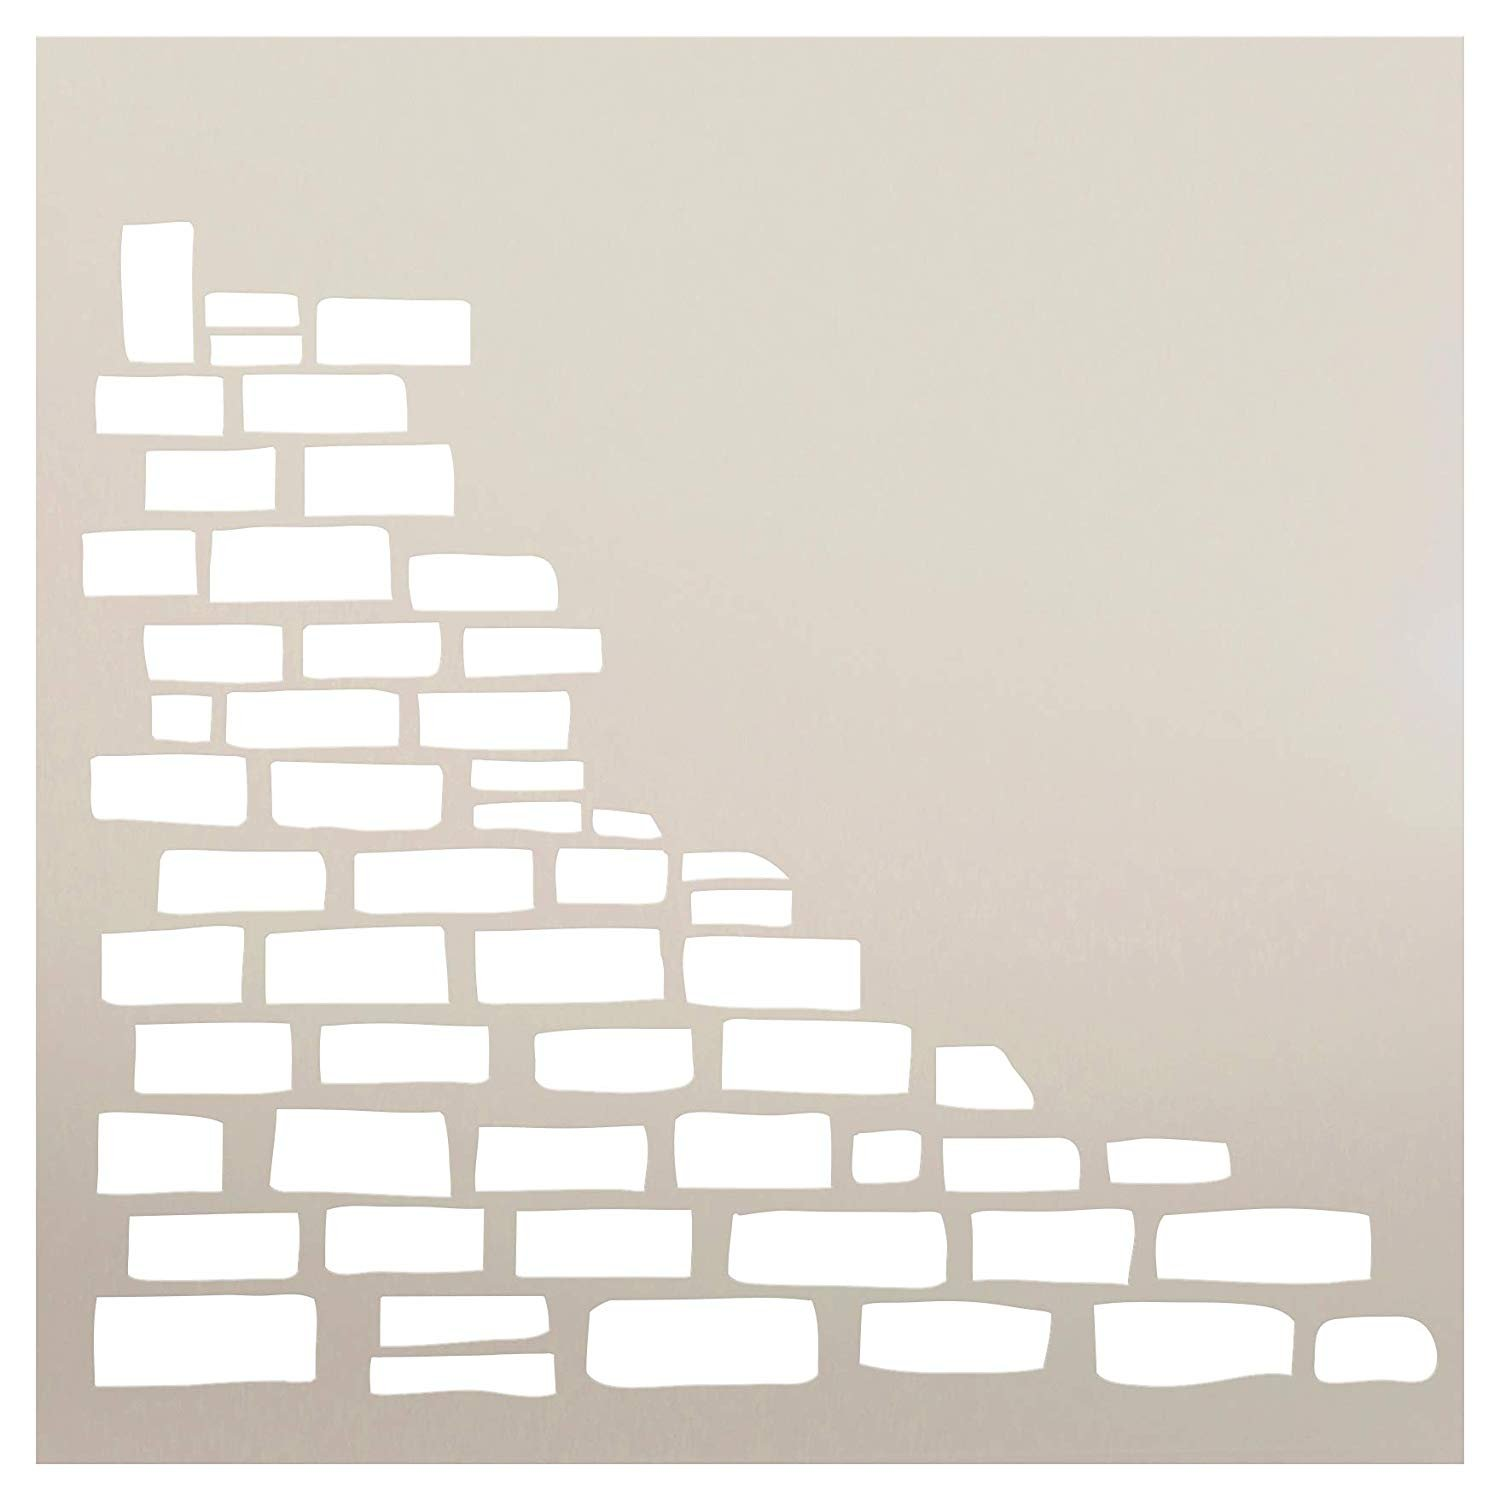 Fun with Shapes Half Stacked Stone Wall Stencil by StudioR12 | Wood Sign | Reusable Mylar Template | Wall Decor | Multi Layering Art Project | Journal Art Deco | DIY Home - Choose Size